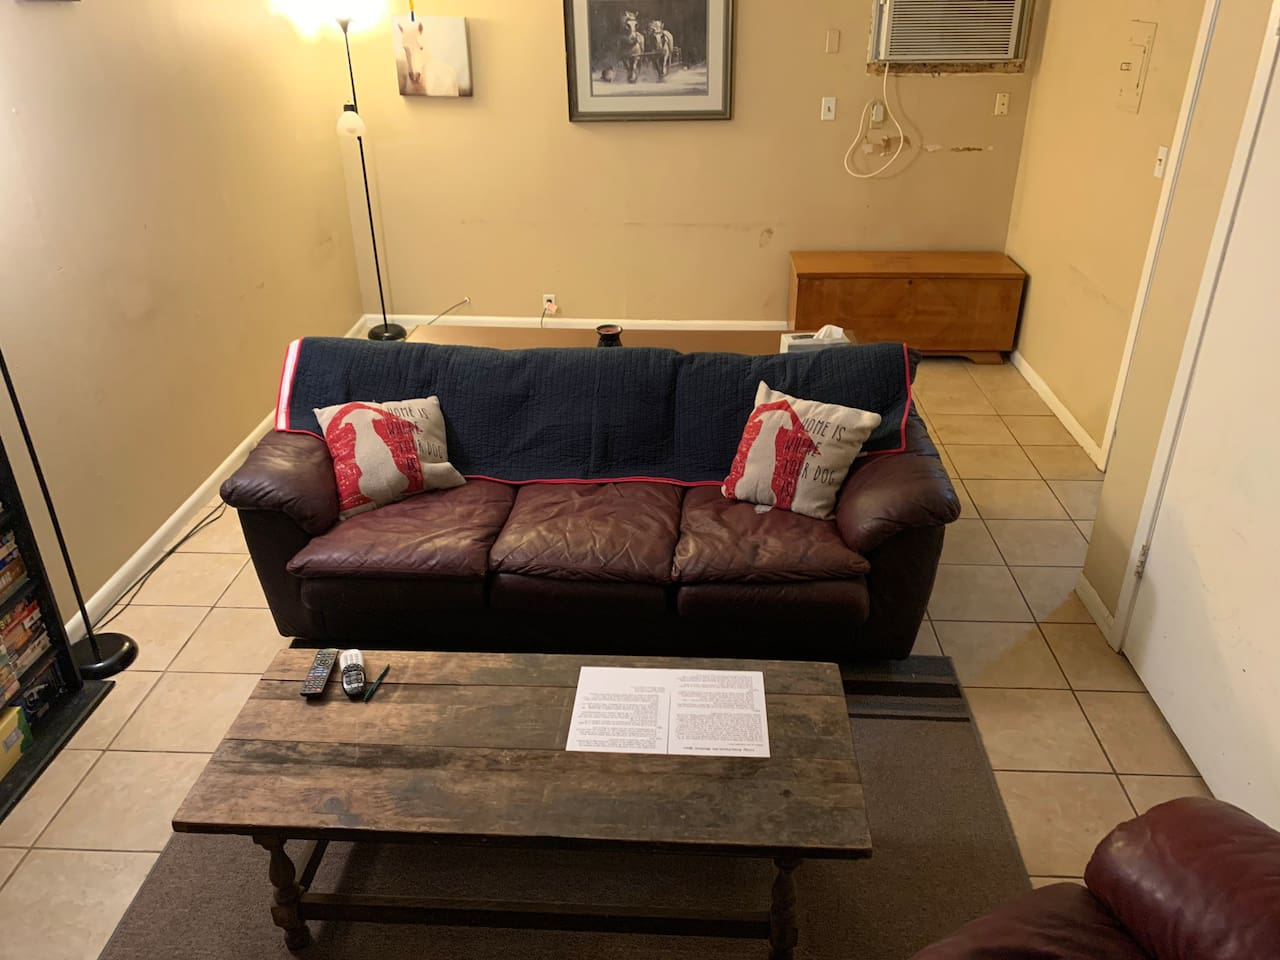 This listing is ONLY for the couch space.